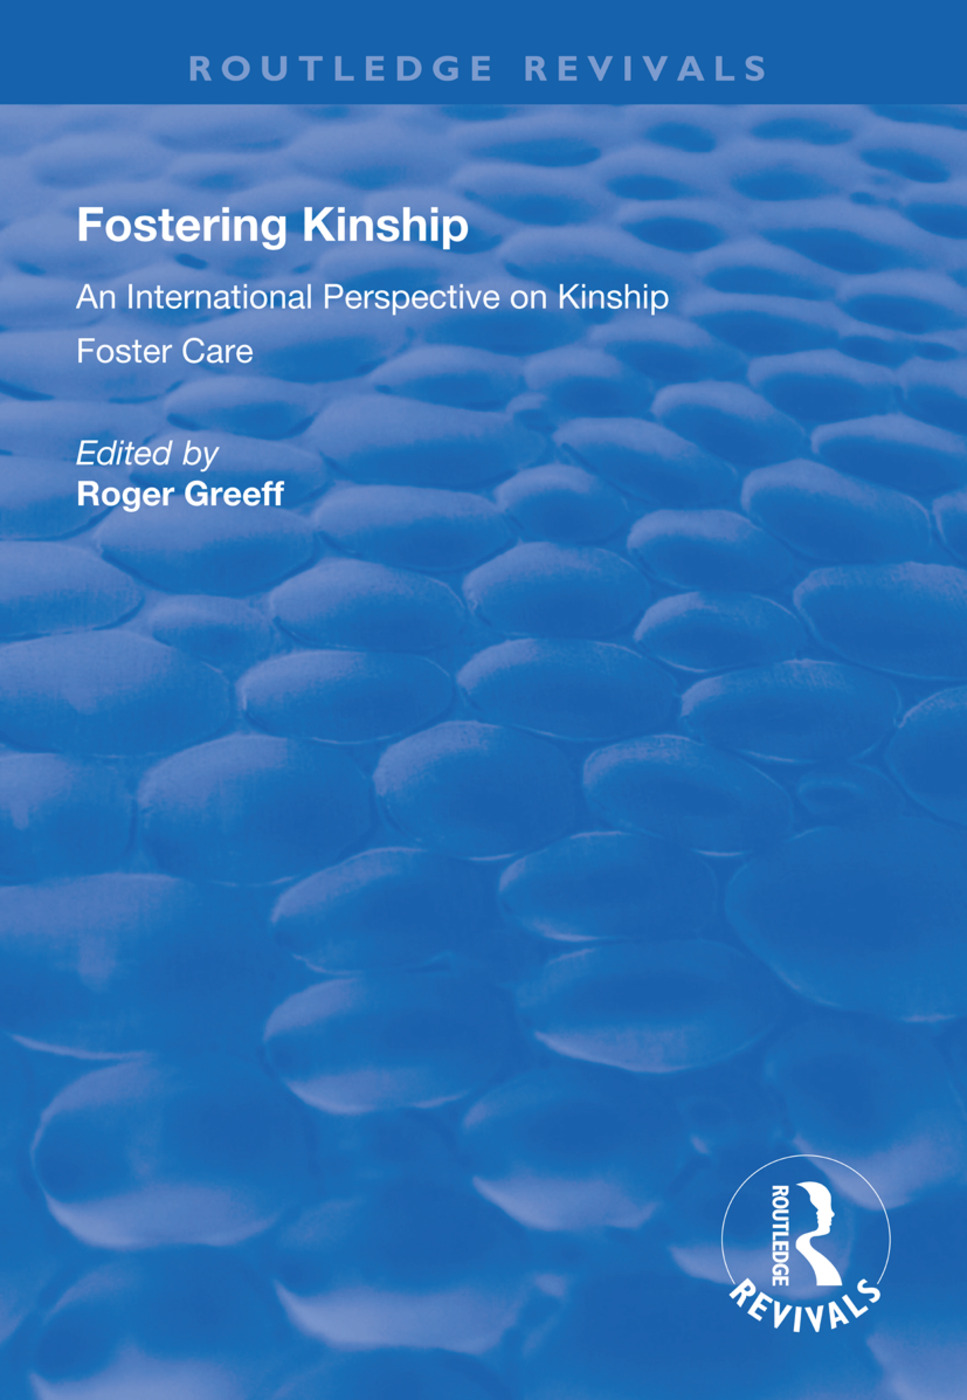 Fostering Kinship: An International Perspective on Kinship Foster Care book cover